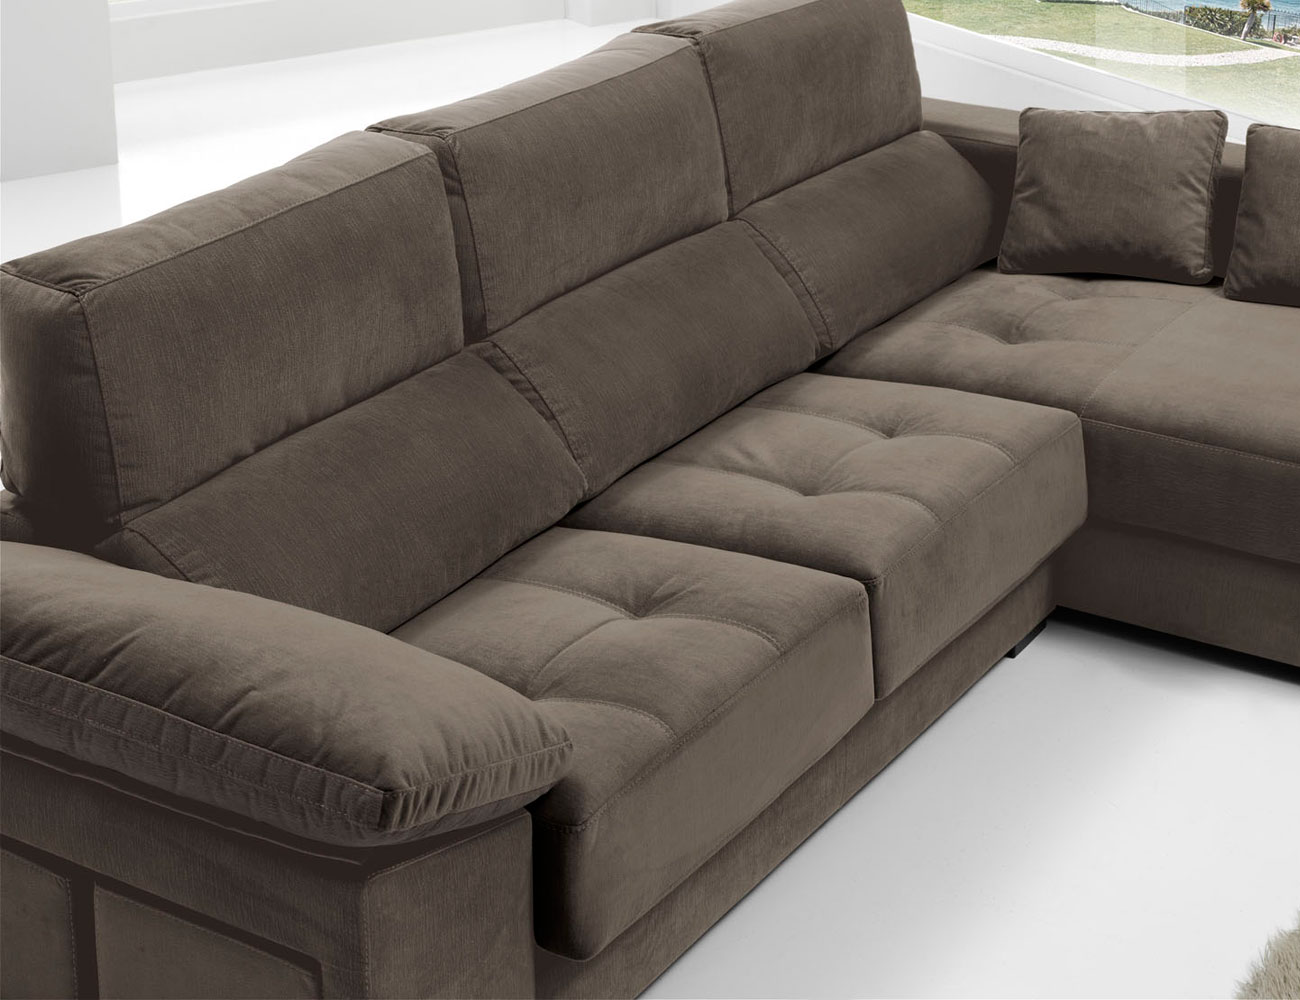 Sofa chaiselongue anti manchas bering pouf 211